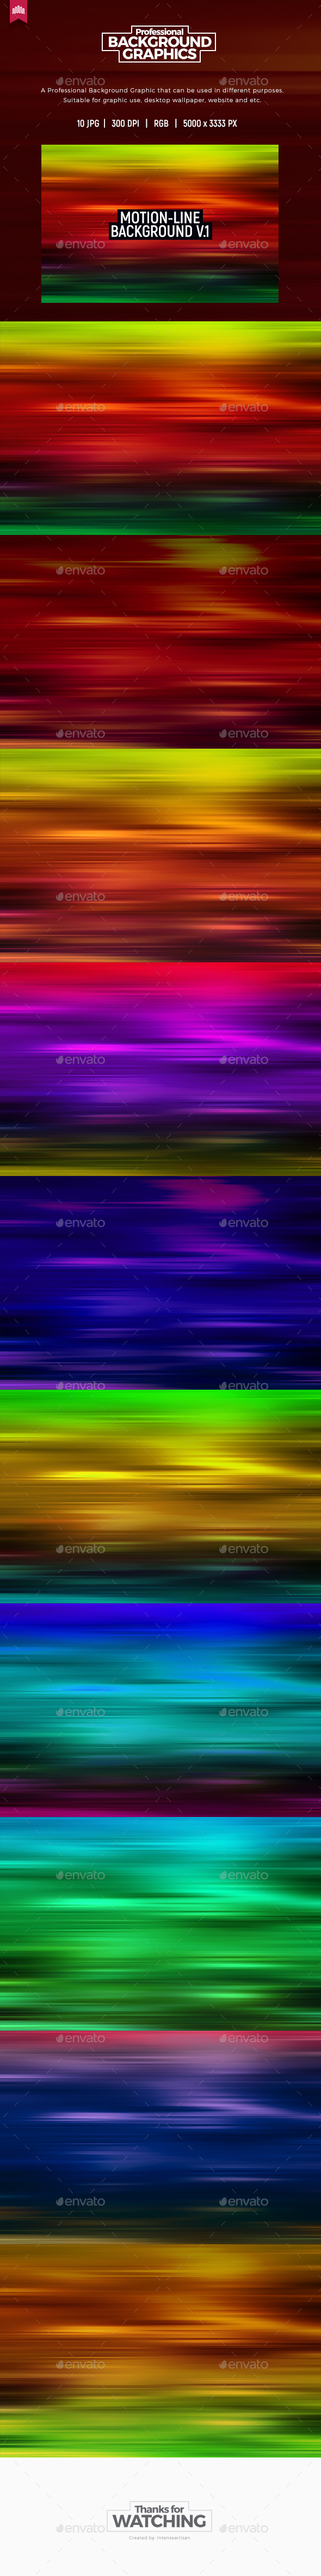 Motion Line - Background V.1 - Abstract Backgrounds